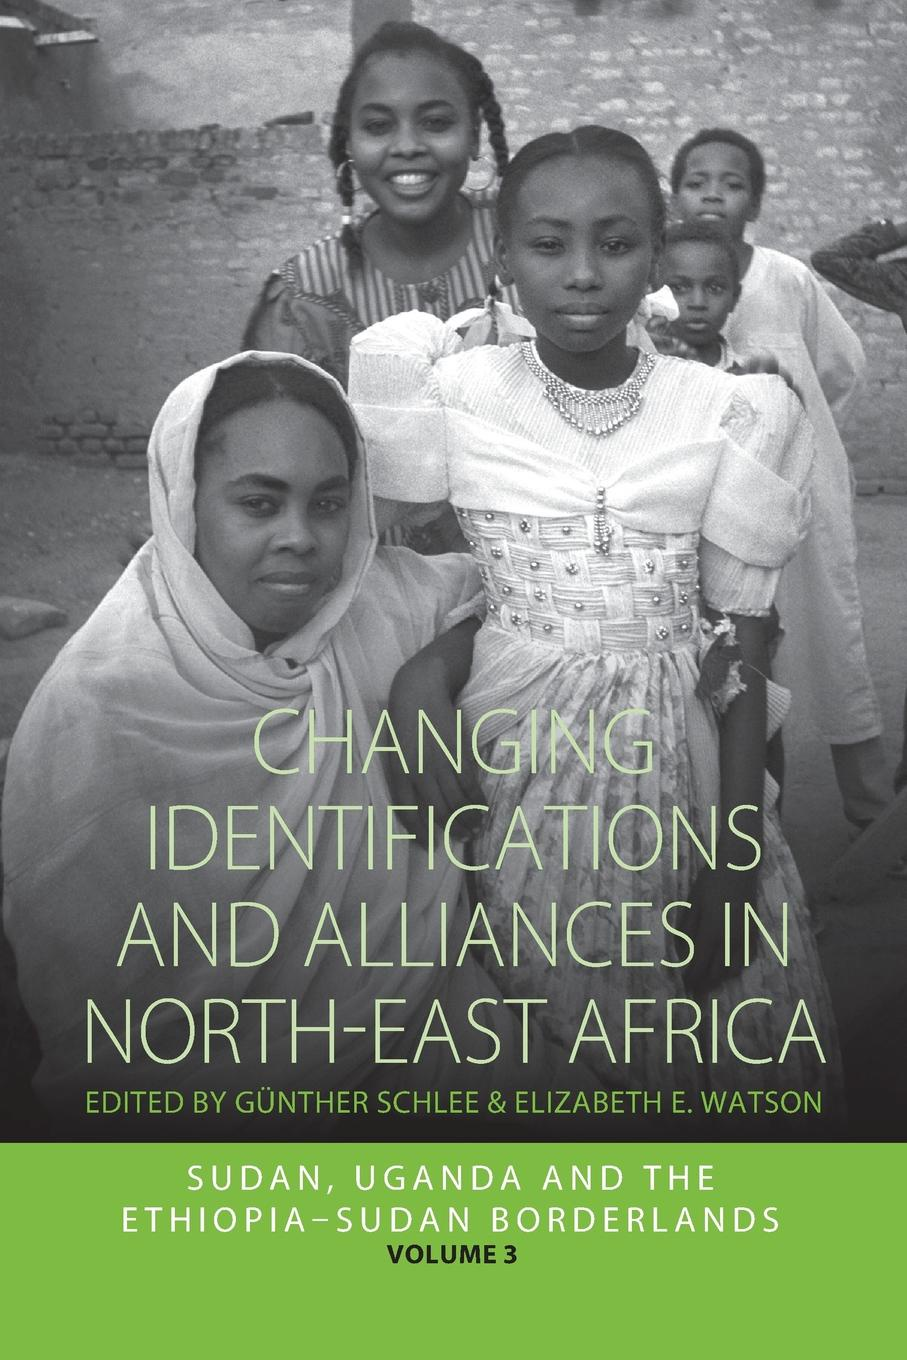 Changing Identifications and Alliances in North-East Africa. Volume II: Sudan, Uganda, and the Ethiopia-Sudan Borderlands lloyd s kramer nationalism in europe and america politics cultures and identities since 1775